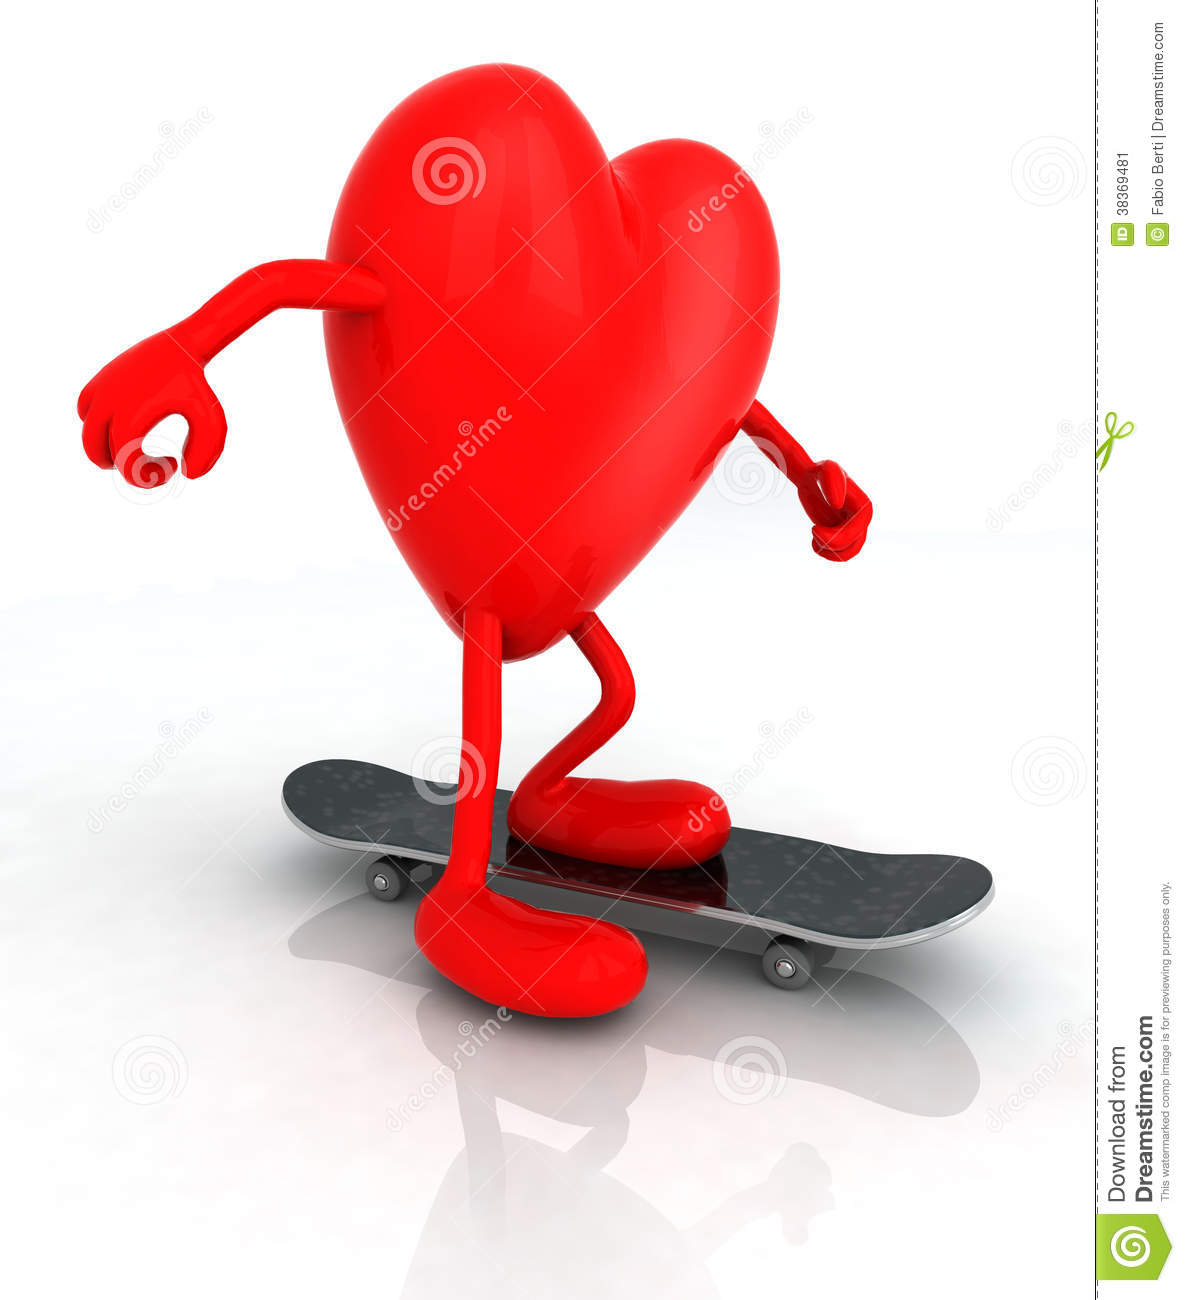 2bdccbef Heart with arms and legs on skateboard, 3d illustration. More similar stock  illustrations